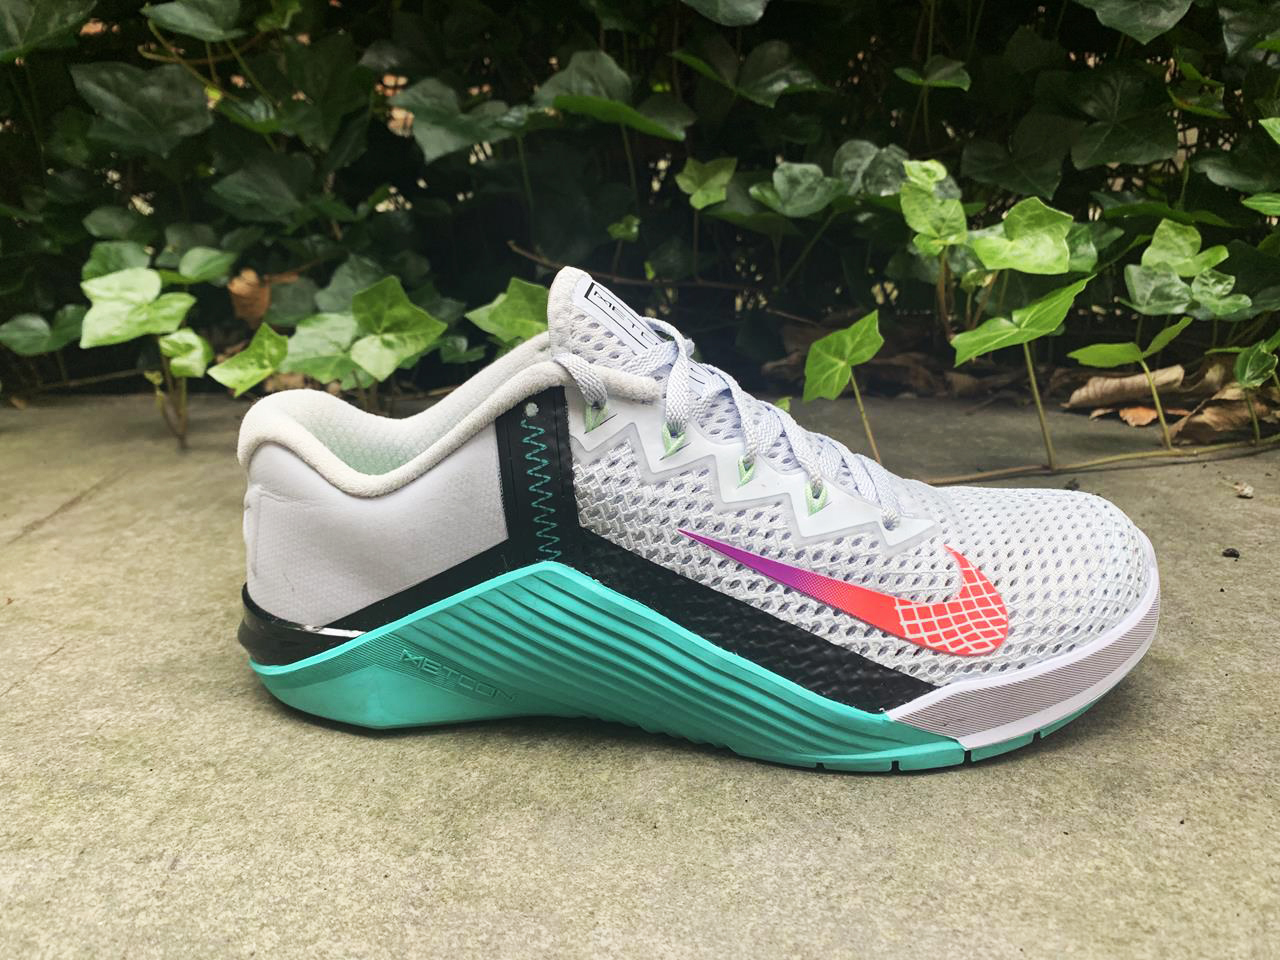 Nike Metcon 6 Review